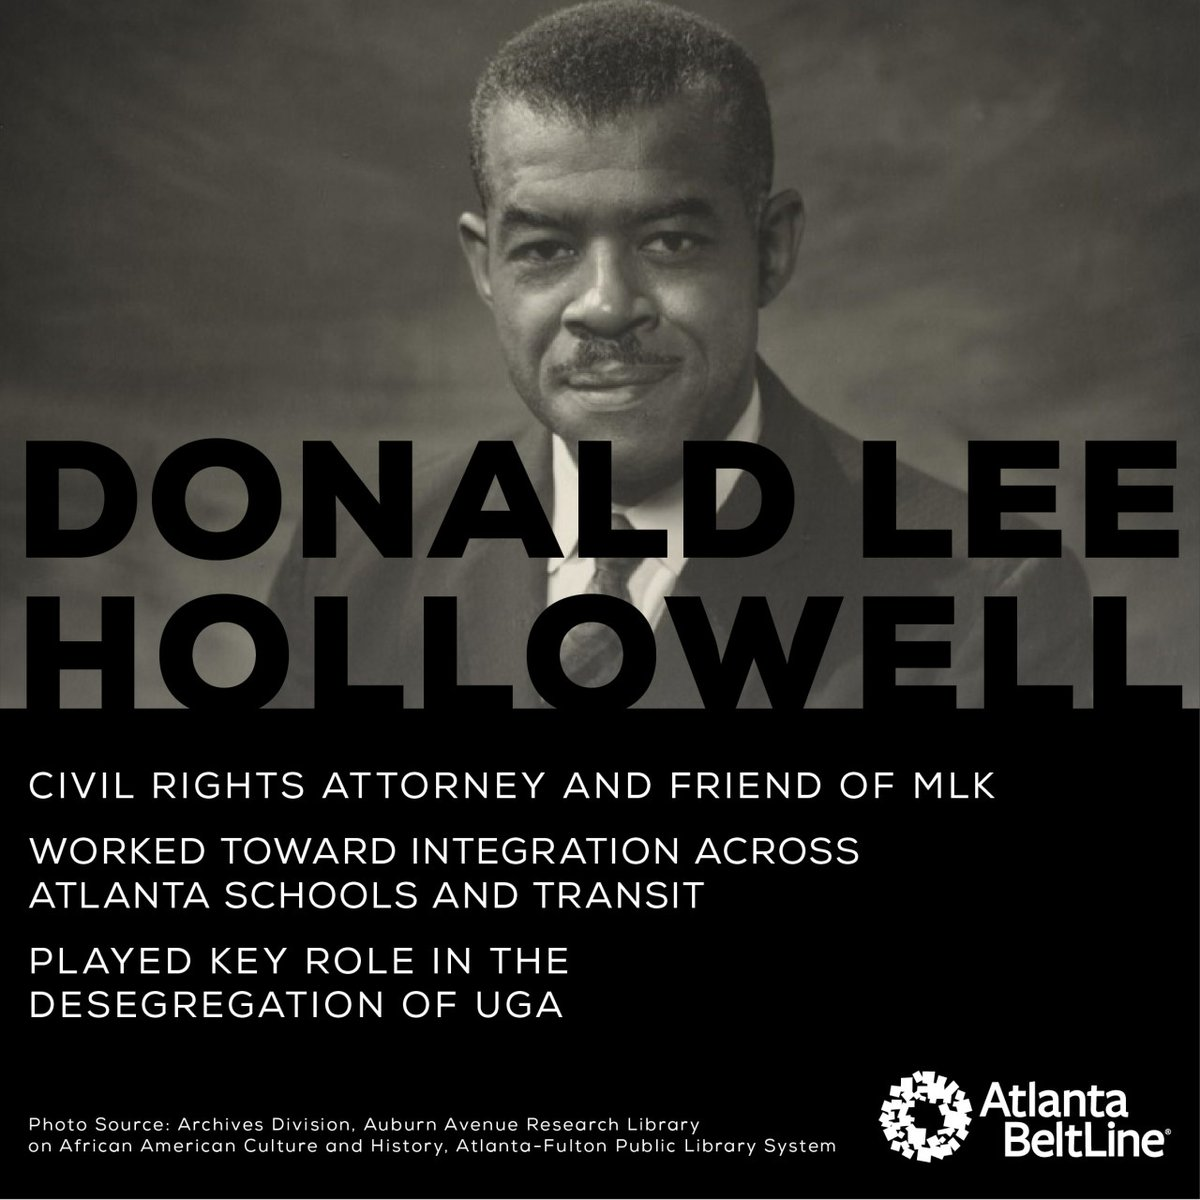 You may be familiar with his namesake highway on Atlanta's west side--today we're celebrating the contributions of Donald Lee Hollowell, a civil rights attorney who played a pivotal role in integration across Georgia.